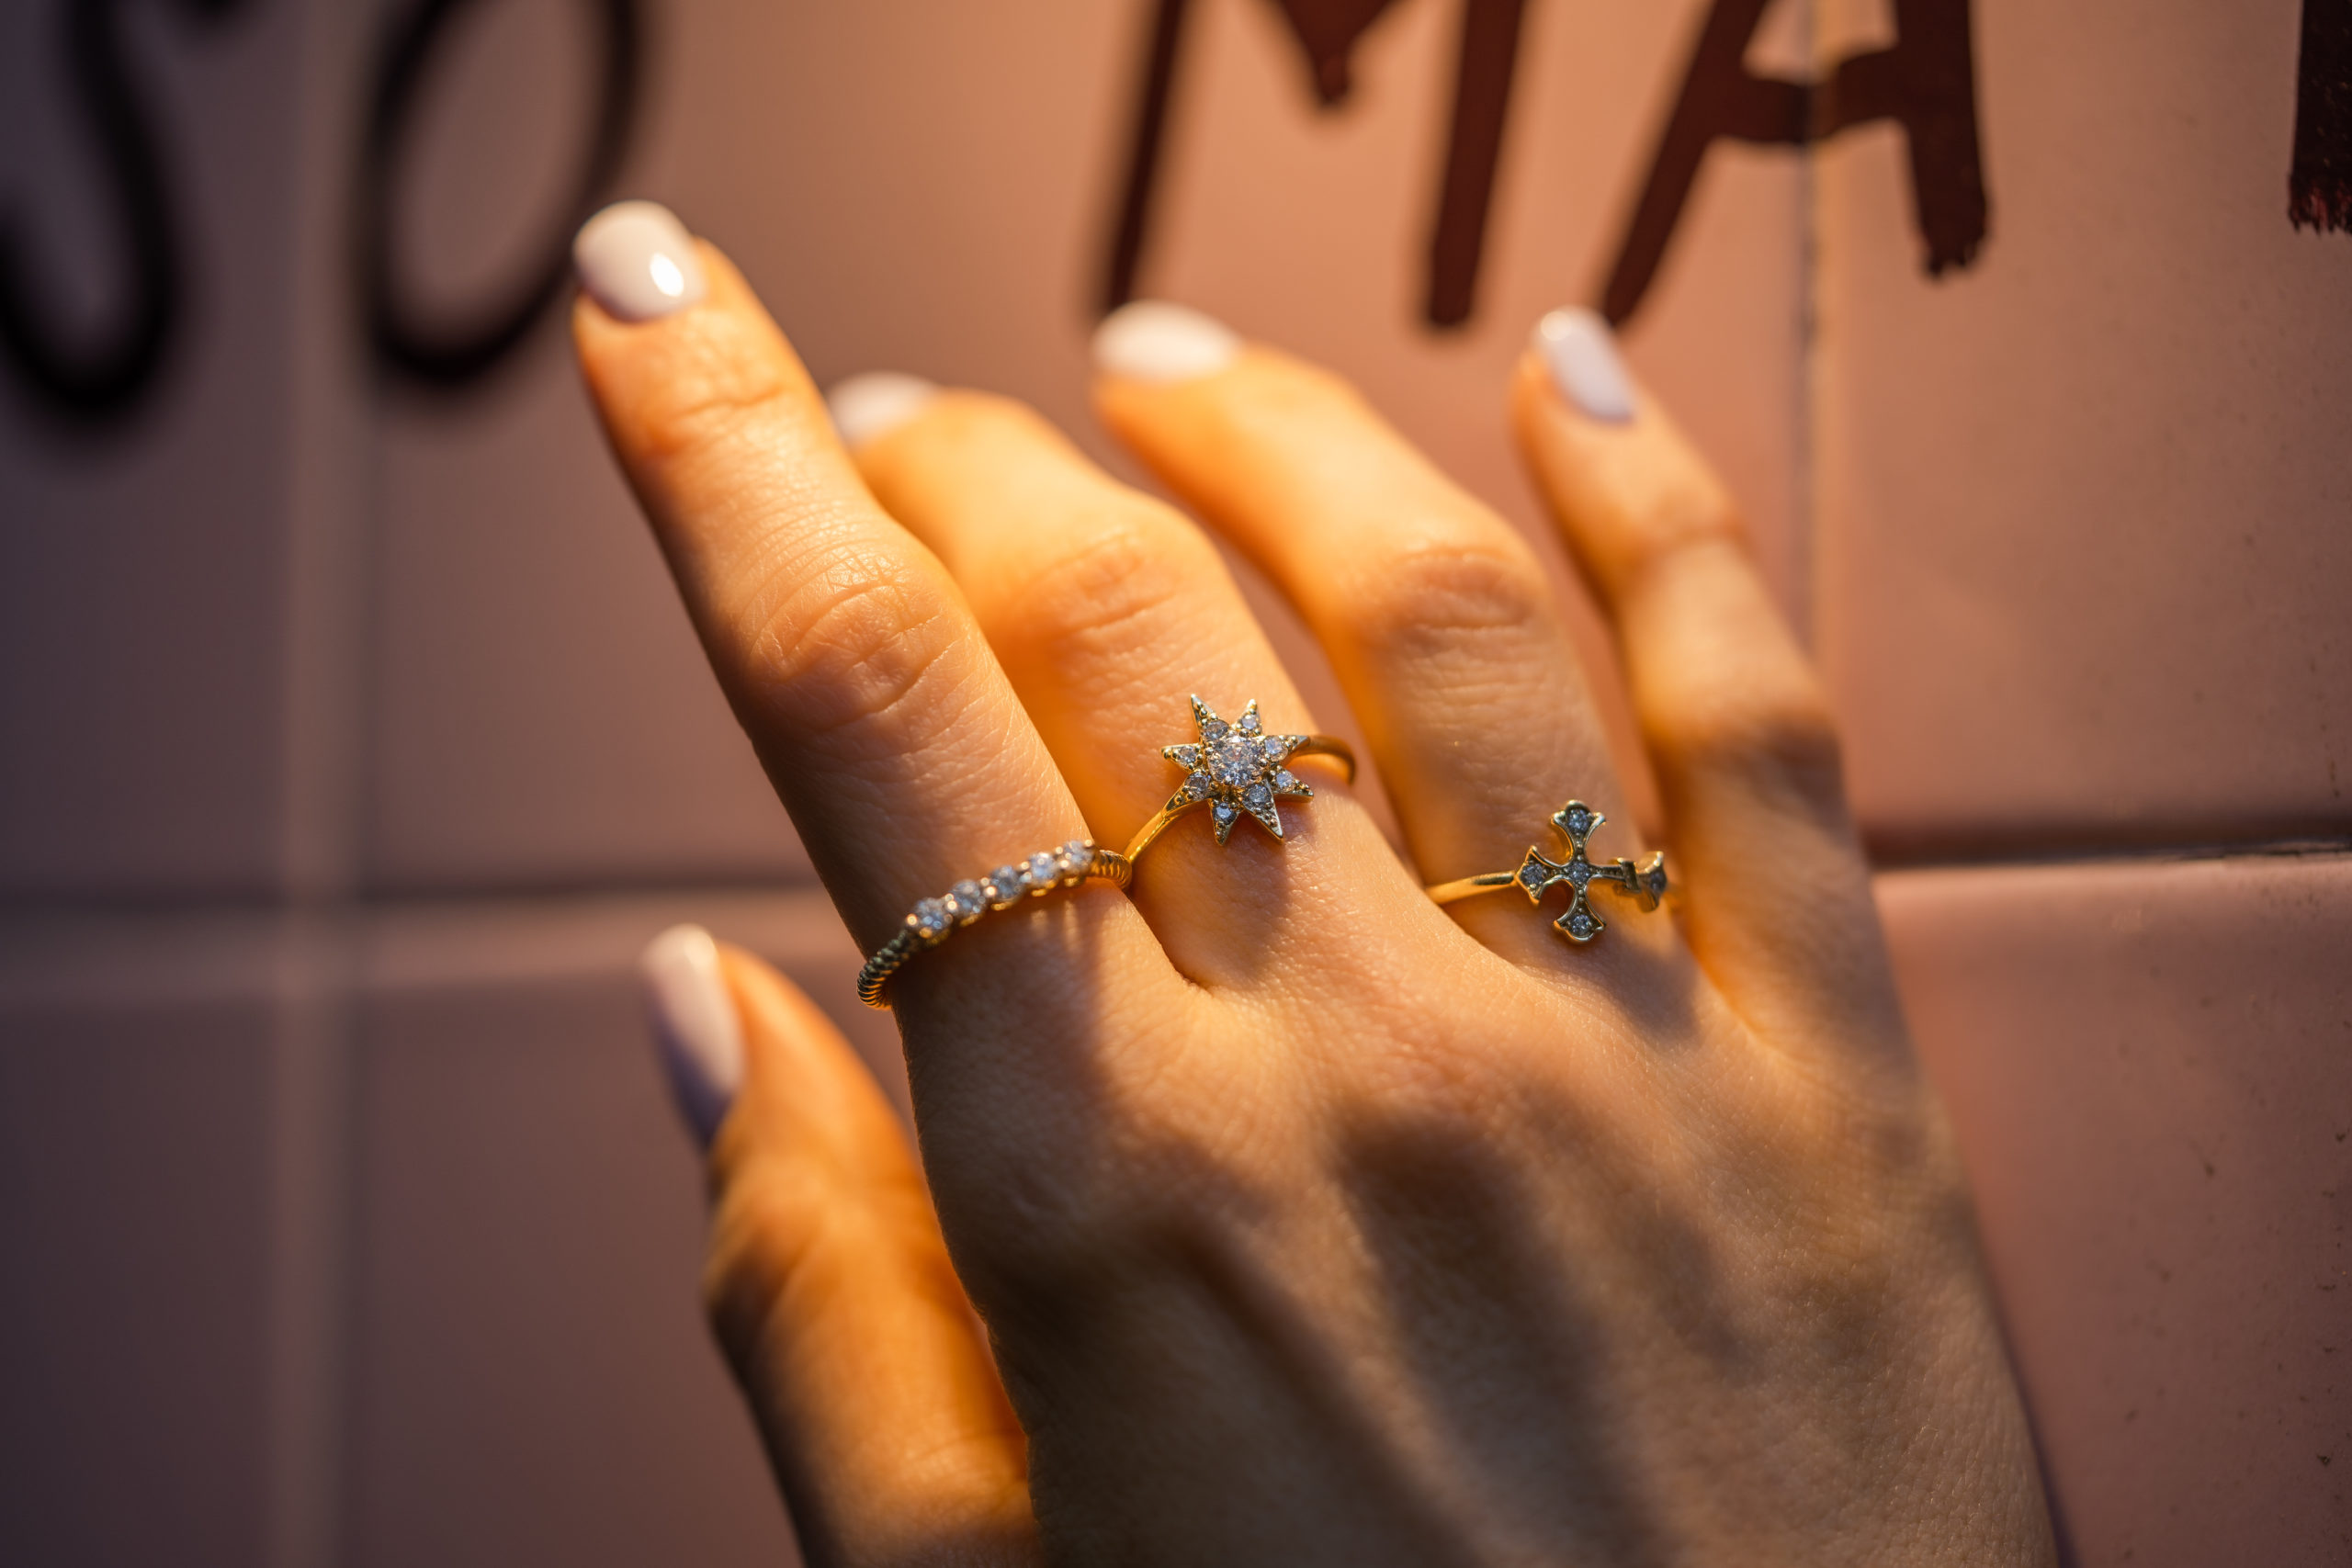 Let's Learn the Difference Between Fine and Fashion Jewelry